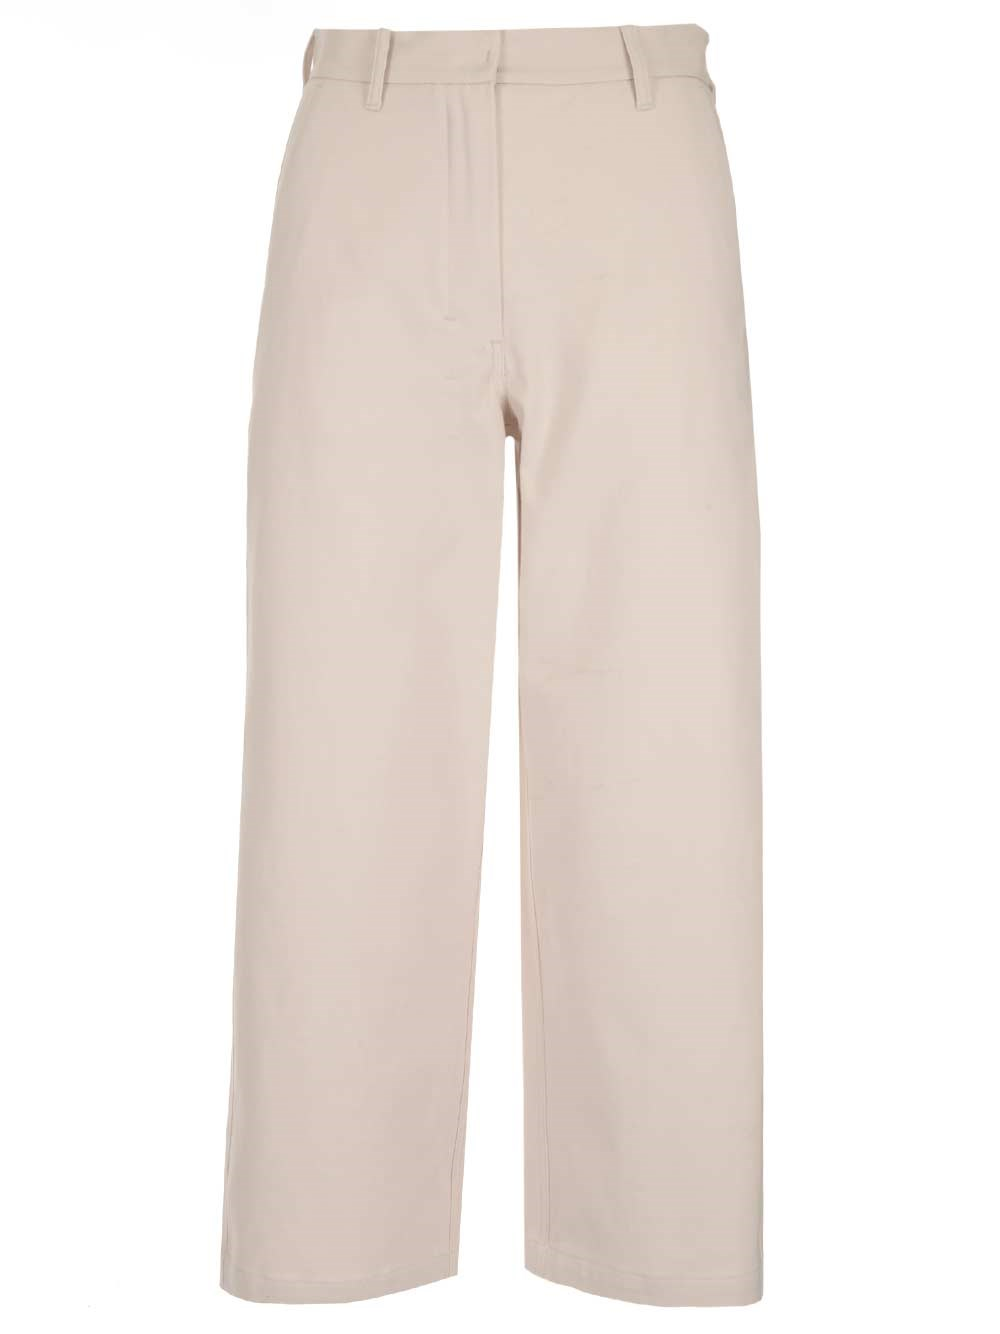 'S MAX MARA Cotton Cropped Trousers